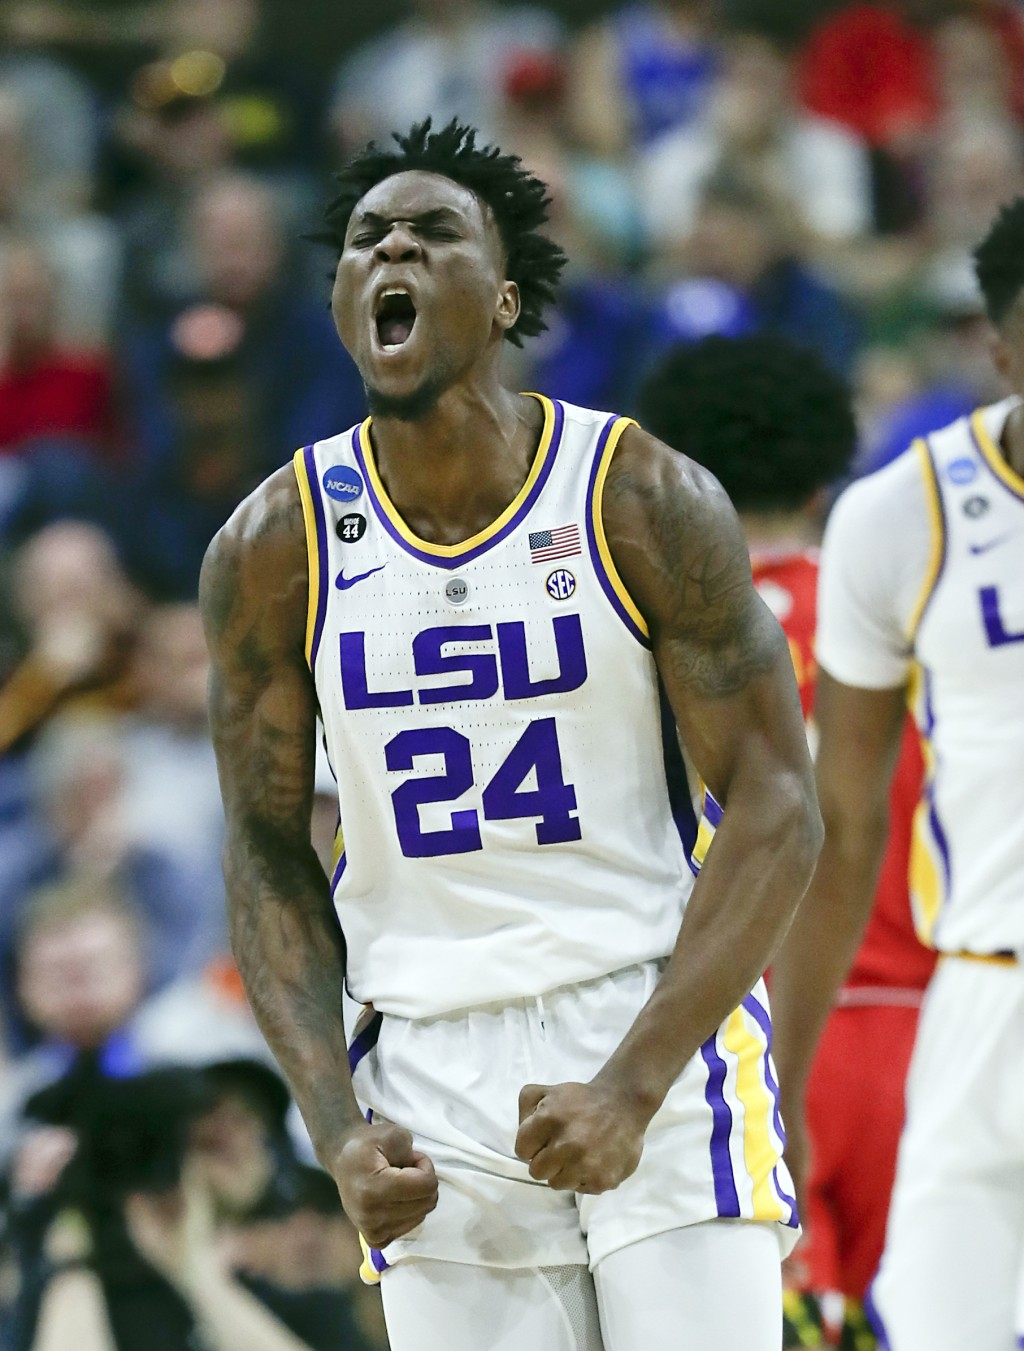 LSU's Emmitt Williams (24) celebrates after making a shot against Maryland during the first half of a second-round game in the NCAA men's college bask